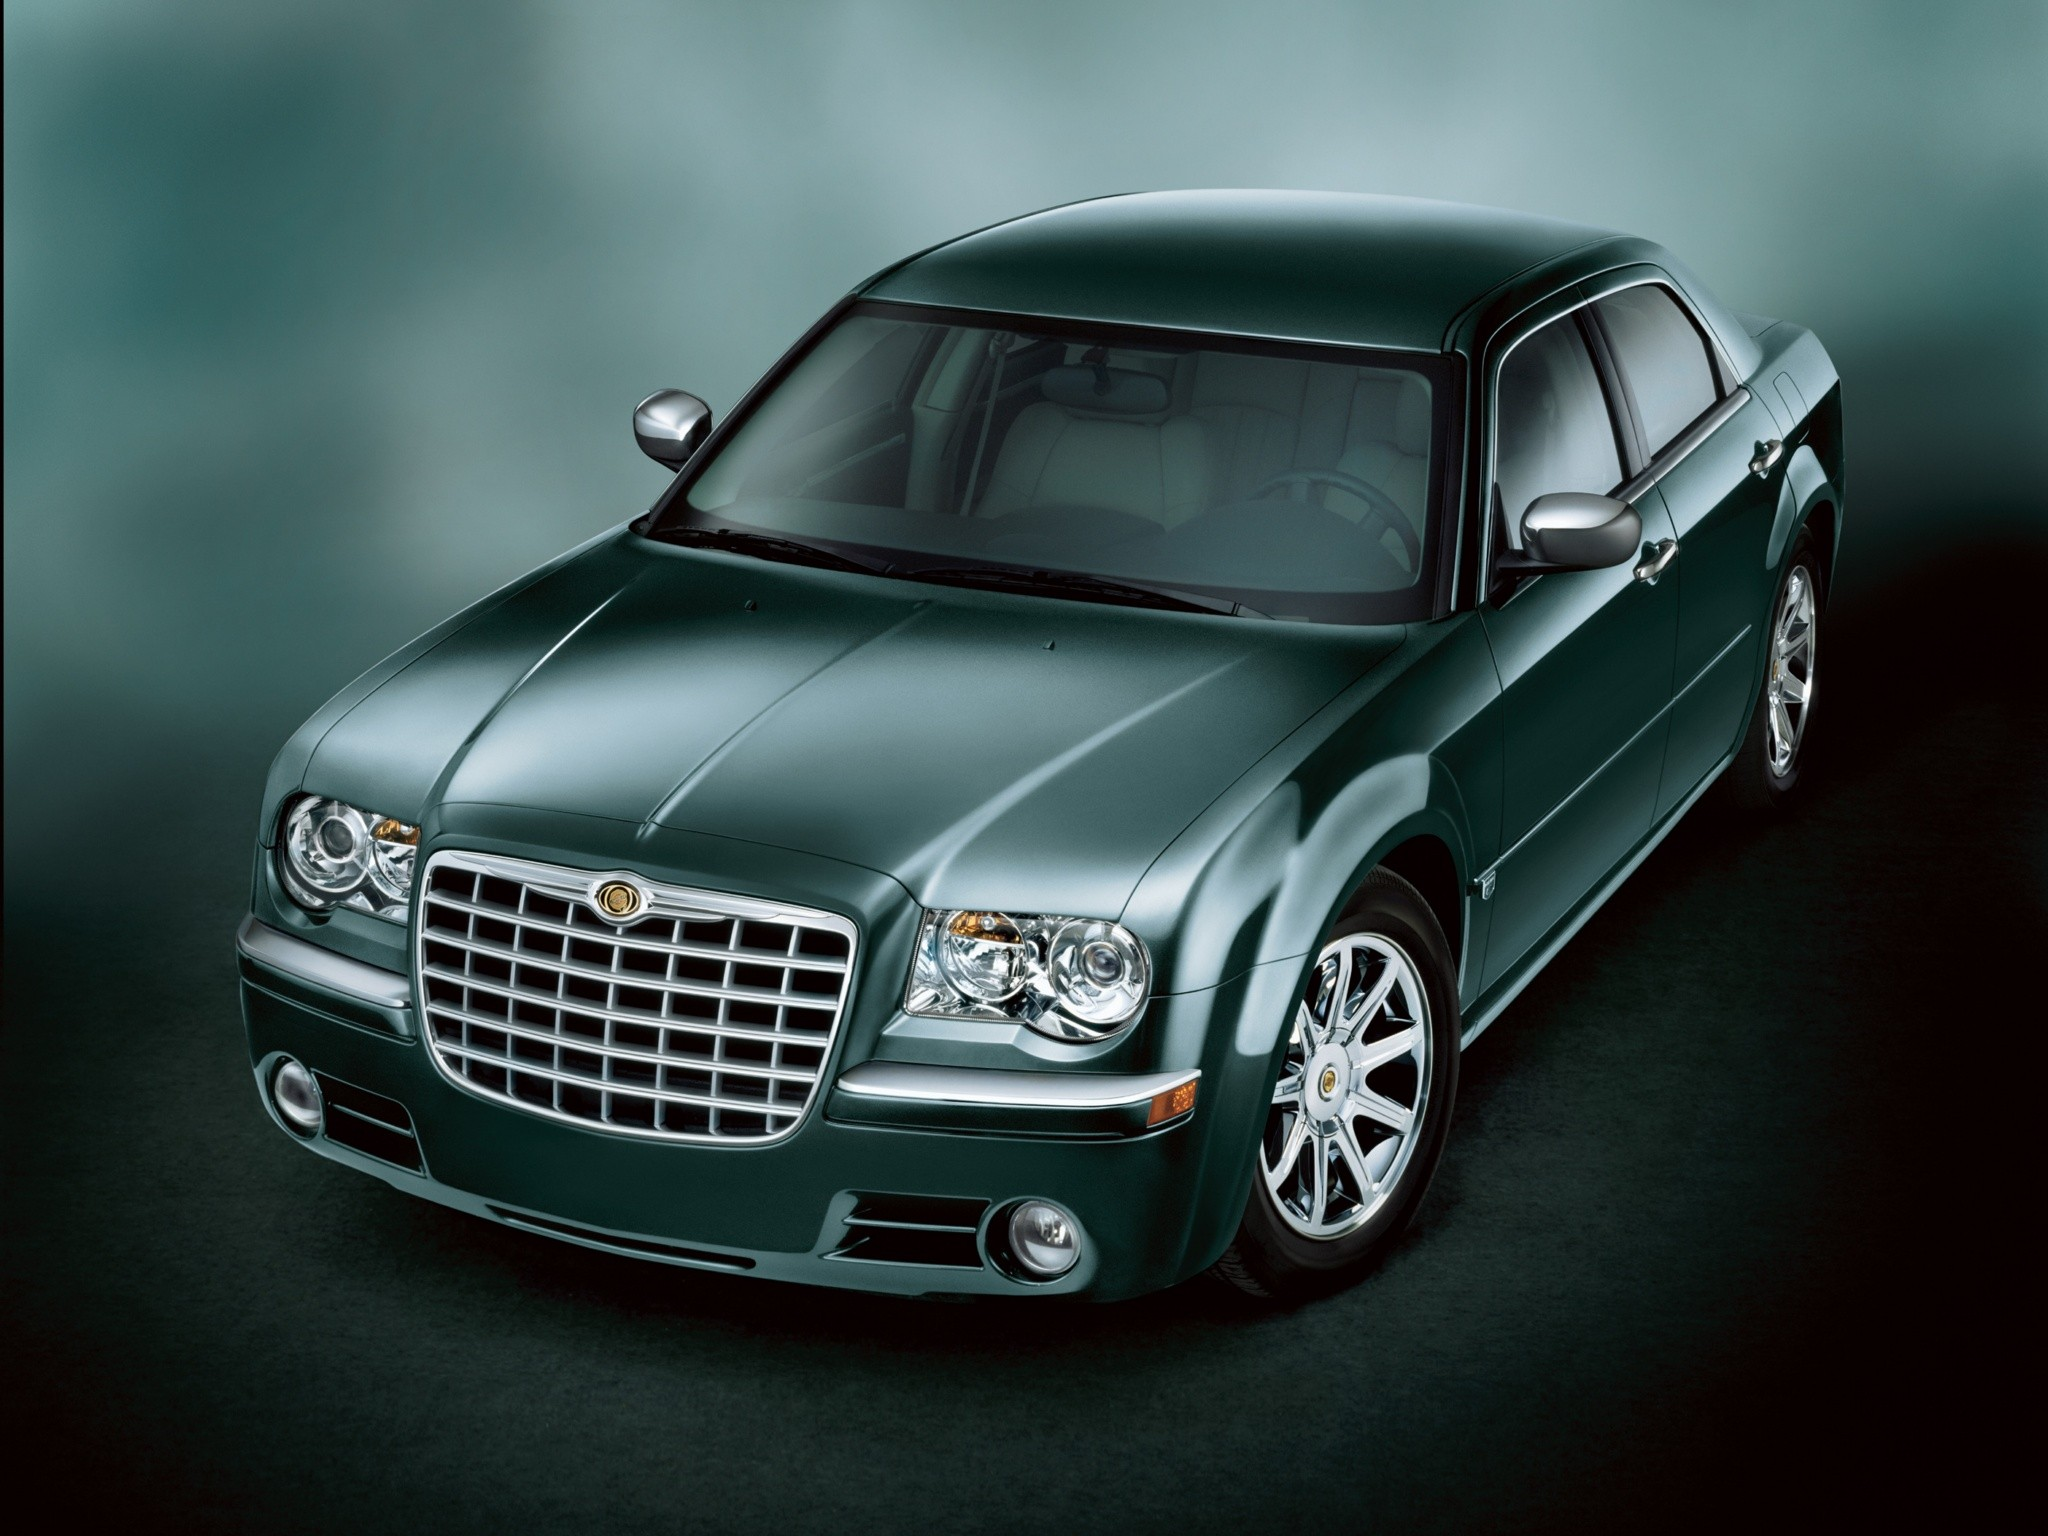 chrysler 300c specs 2004 2005 2006 2007 2008 2009 2010 autoevolution. Black Bedroom Furniture Sets. Home Design Ideas